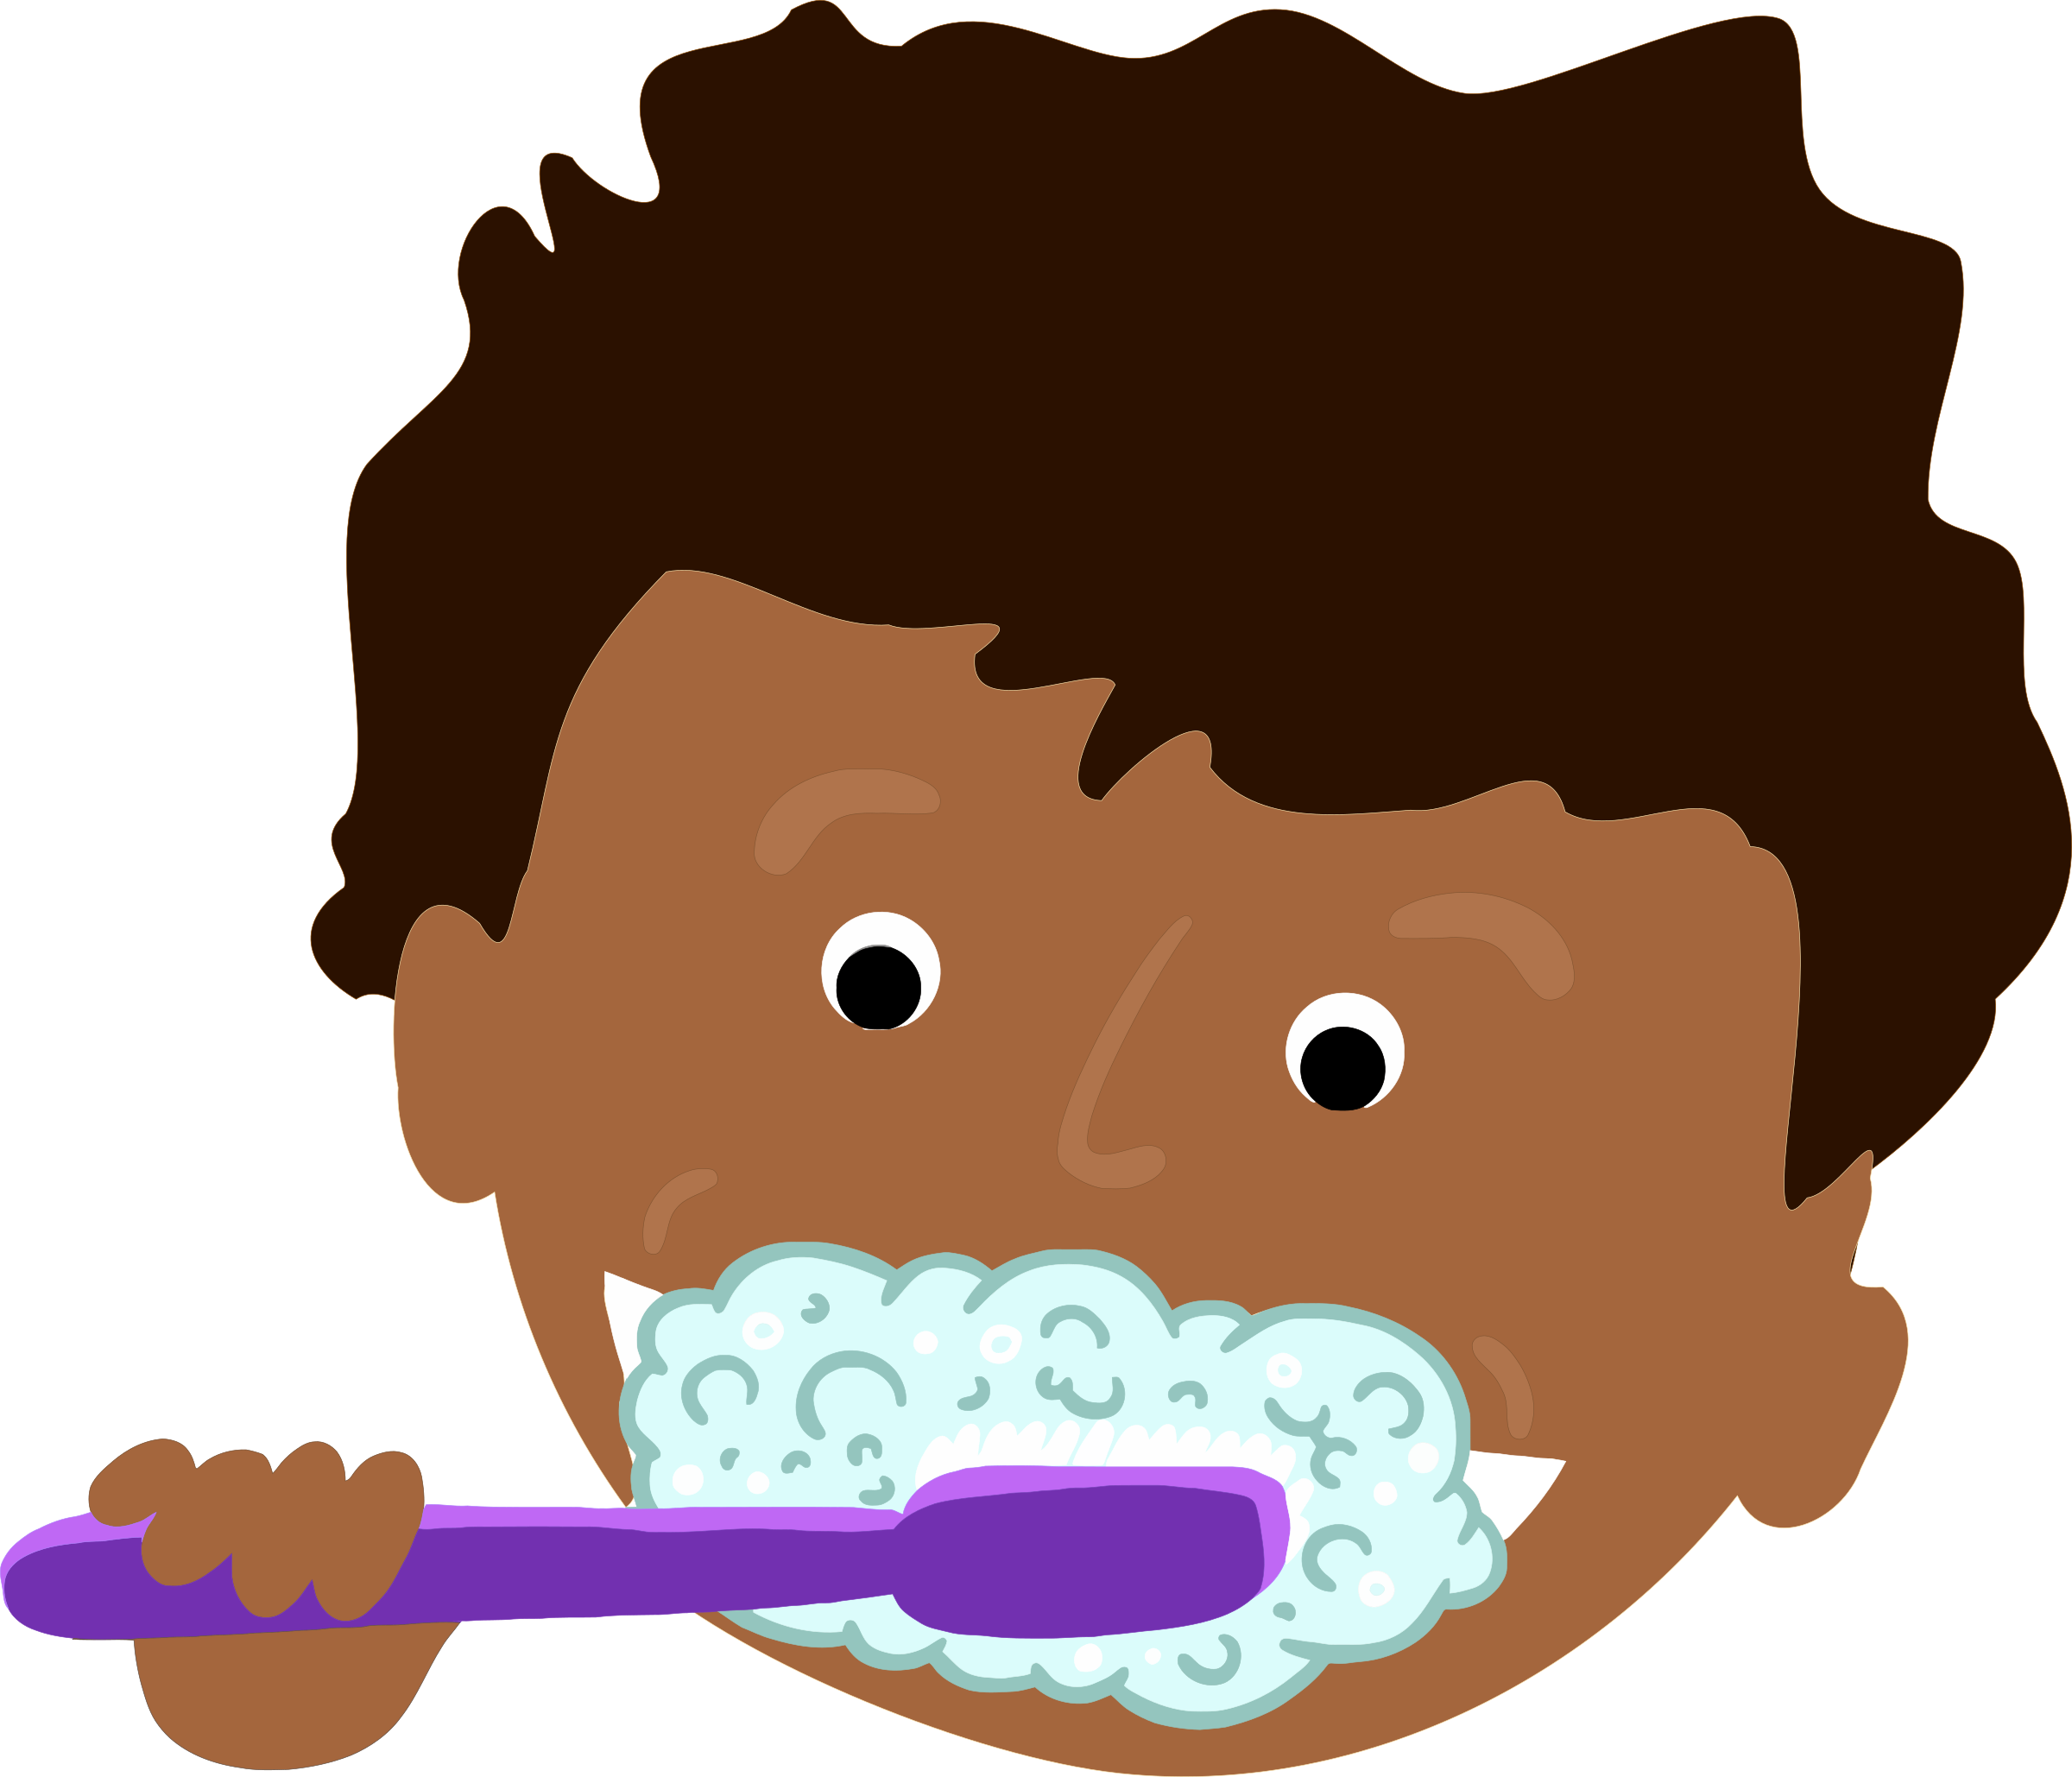 clipart african kid brushing teeth rh openclipart org brushing teeth clipart black and white brushing teeth clipart black and white